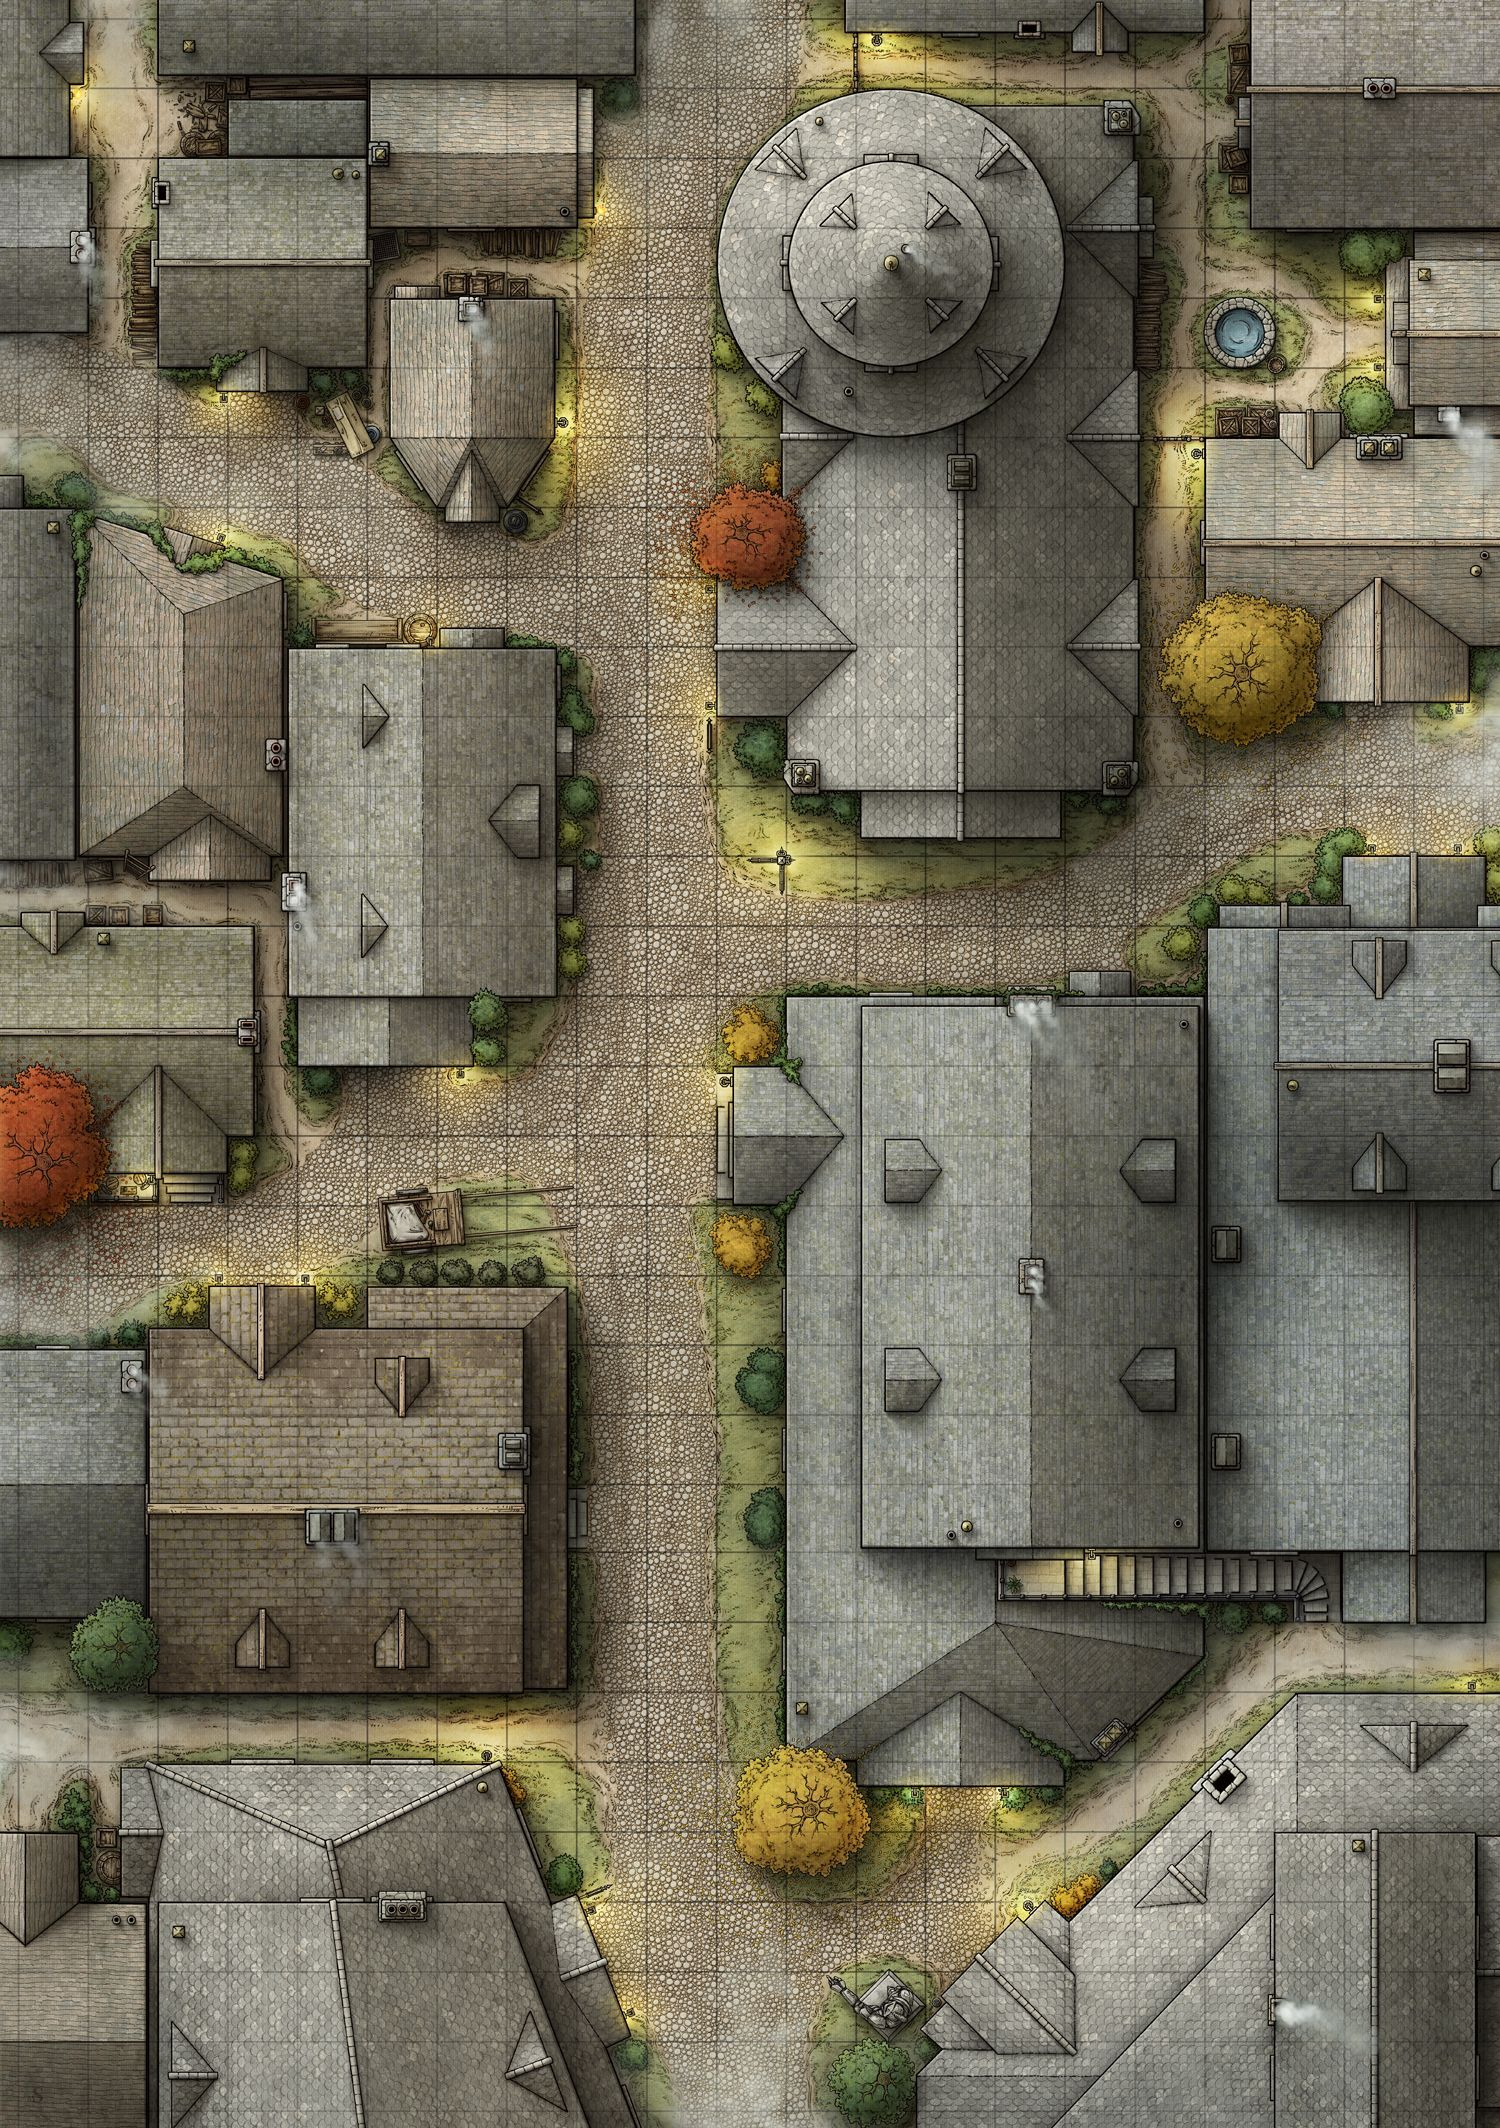 Dnd Street Map : street, Tabletopgames, #tabletop, #games, #dungeons, #dragons, Tabletop, Maps,, Fantasy, Dungeon